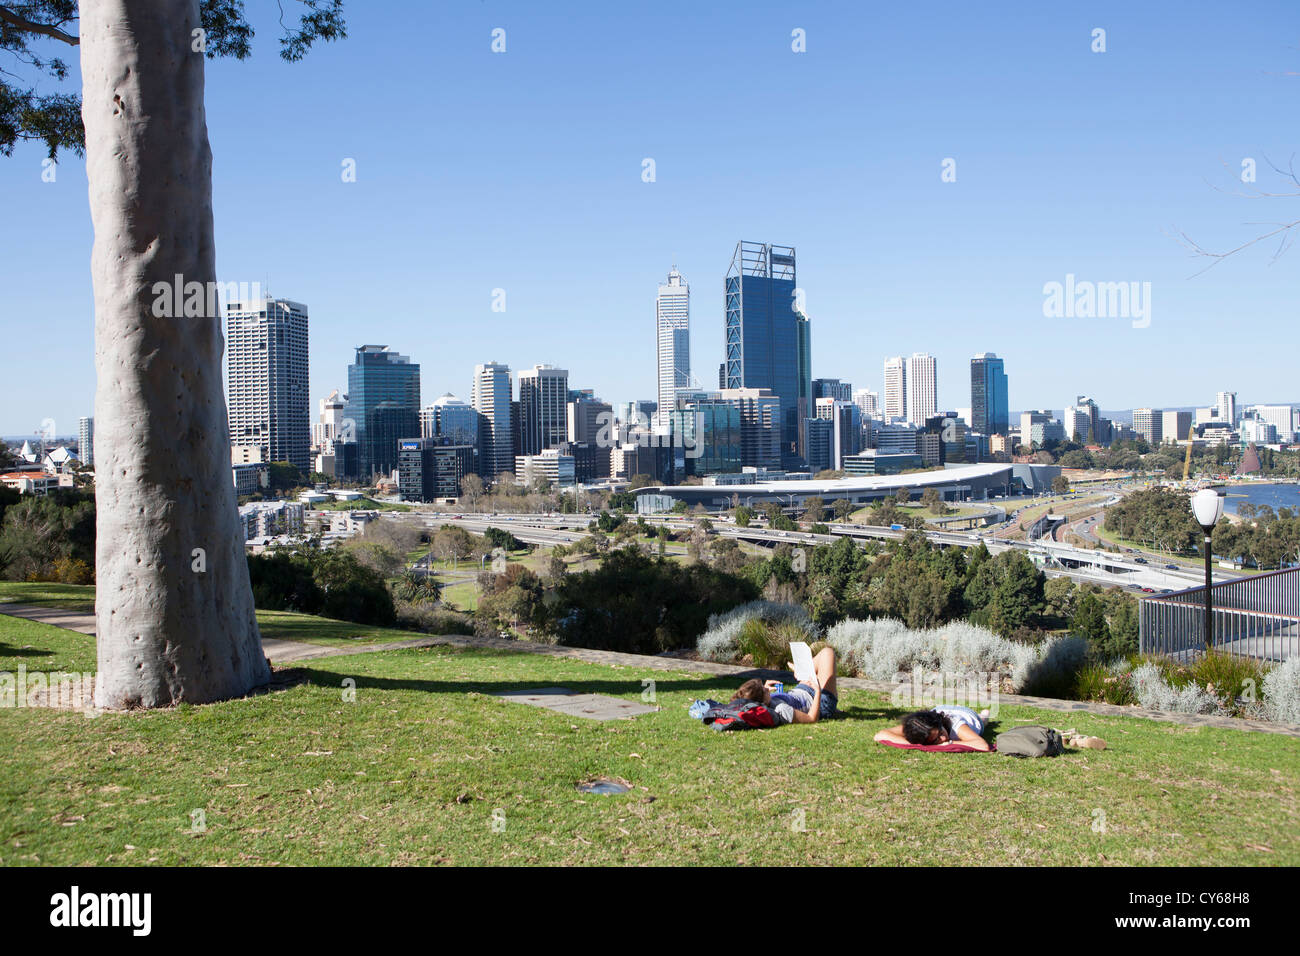 Perth CBD as seen from Kings Park, Perth, Western Australia Stock